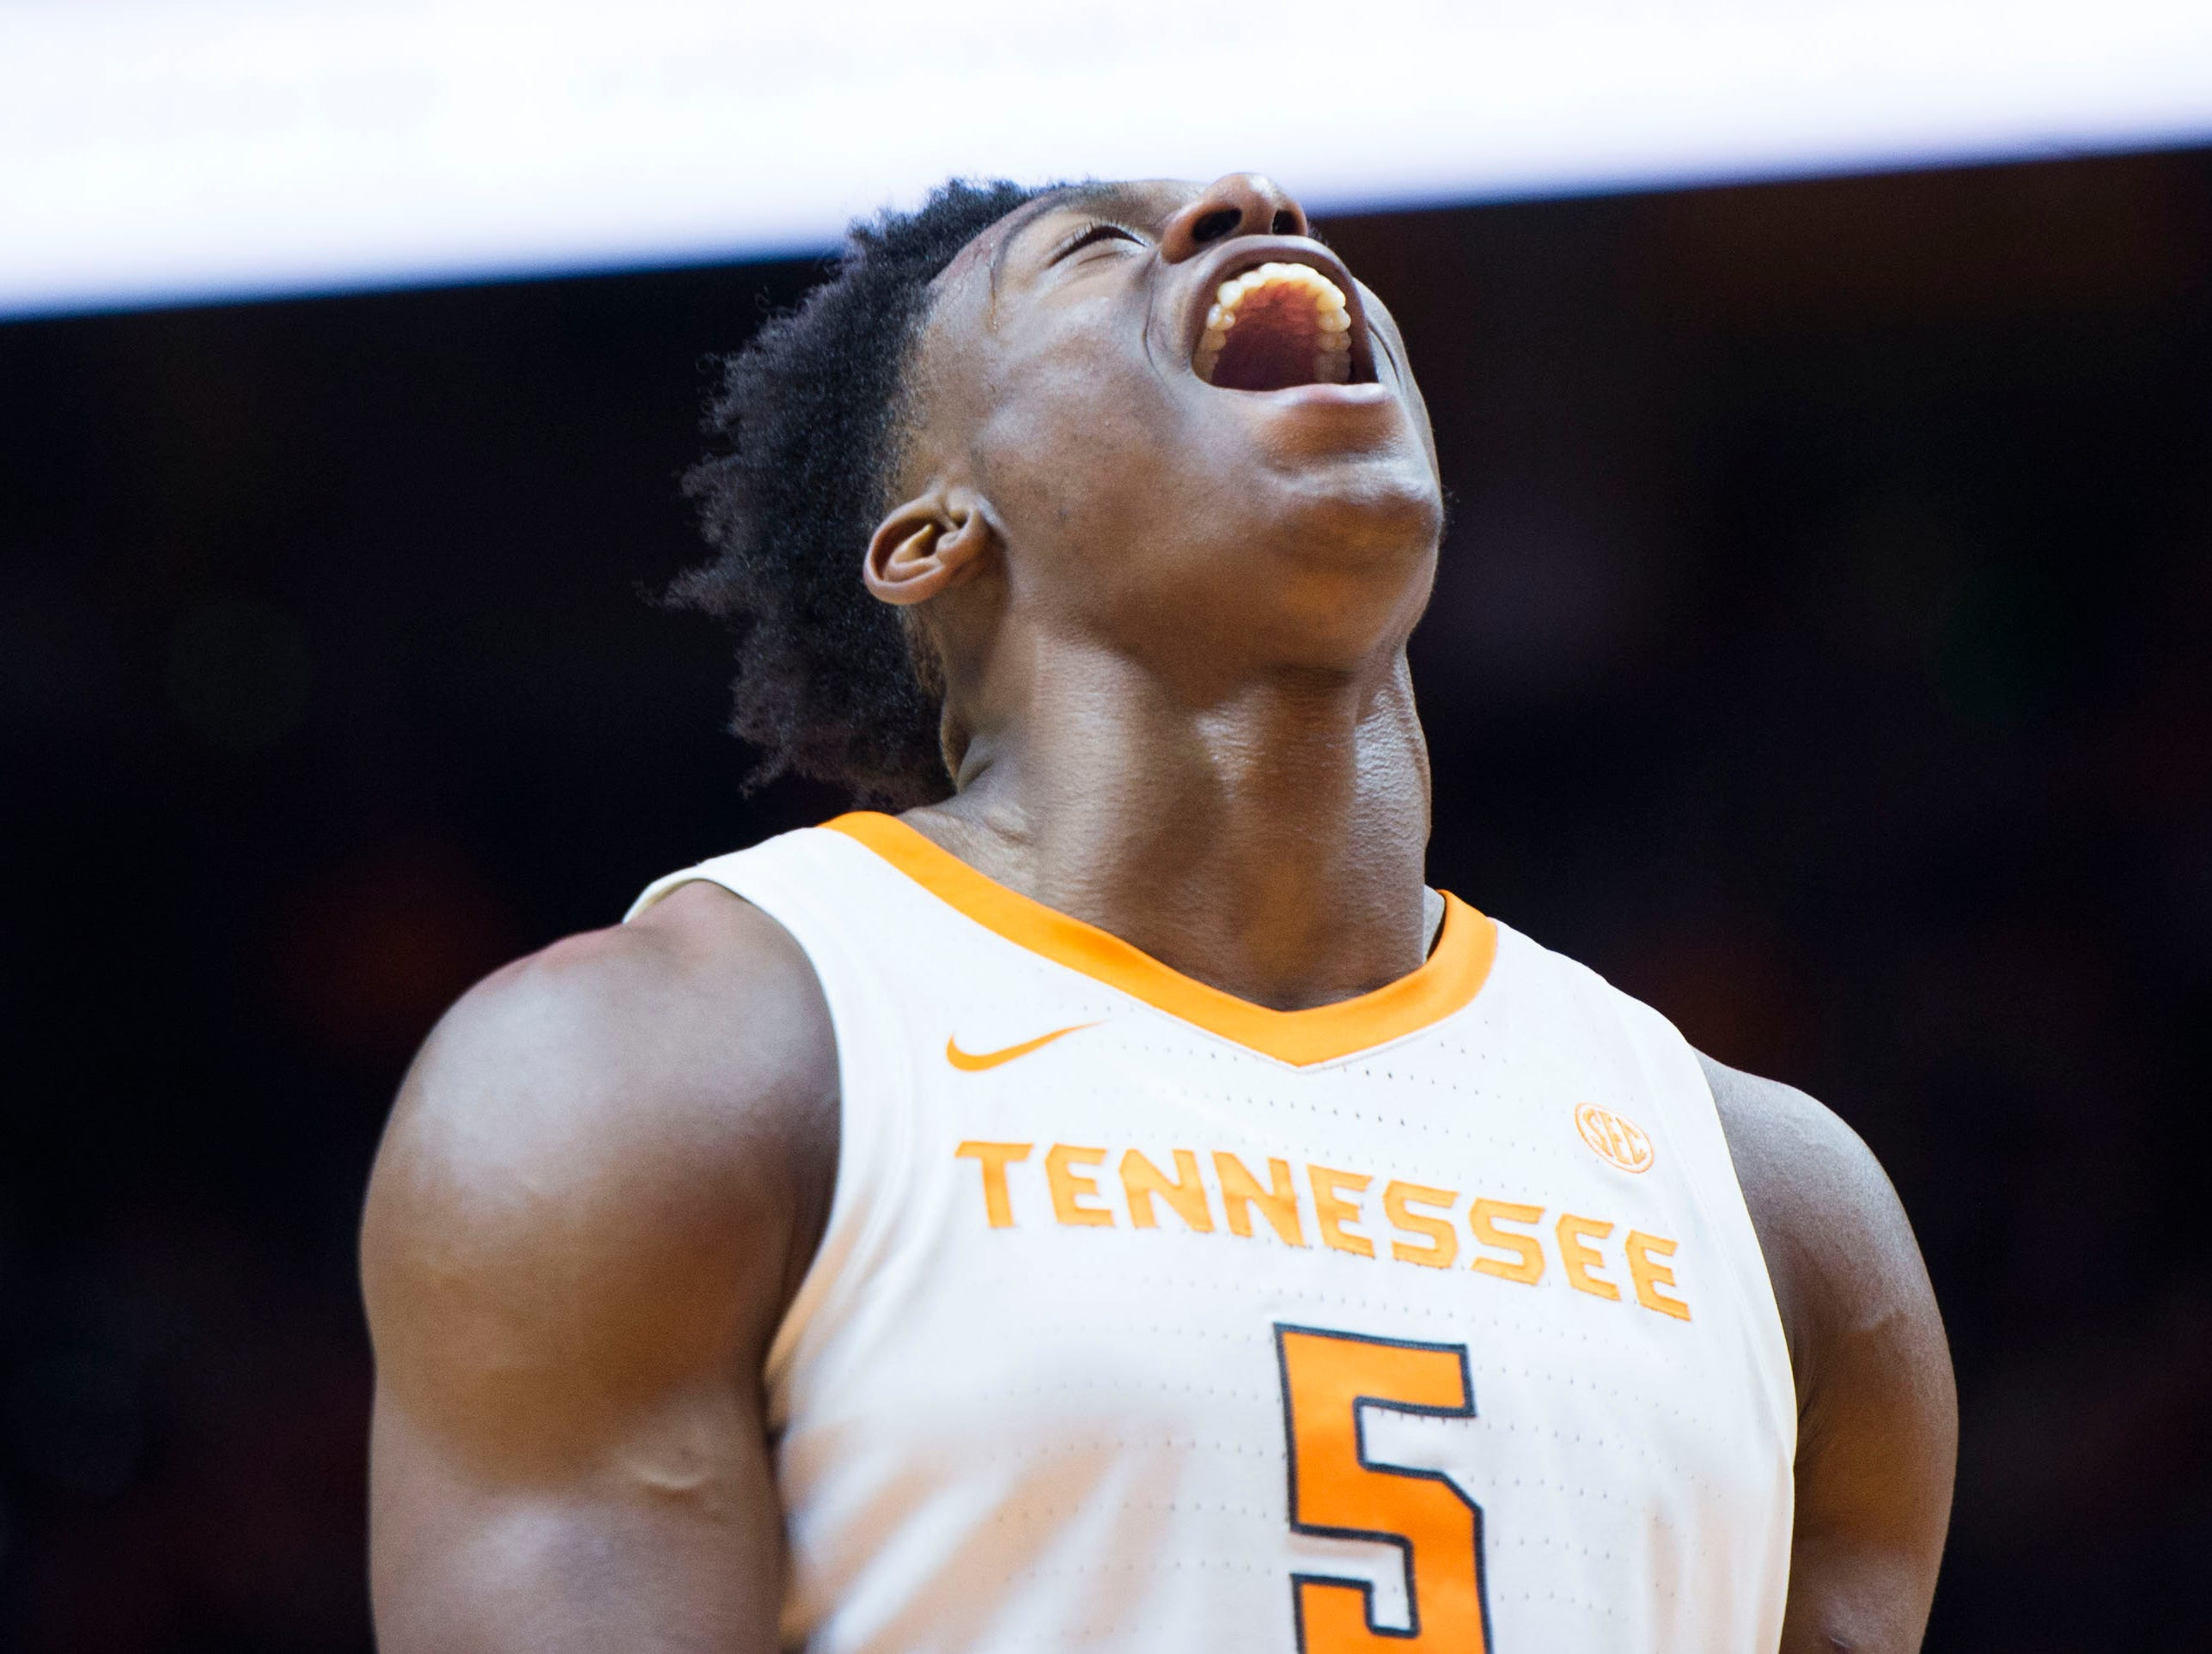 Tennessee's Admiral Schofield (5) celebrates a dunk during the first half of a NCAA men's basketball game between Tennessee and Eastern Kentucky University at Thompson-Boling Arena Wednesday, Nov. 28, 2018.